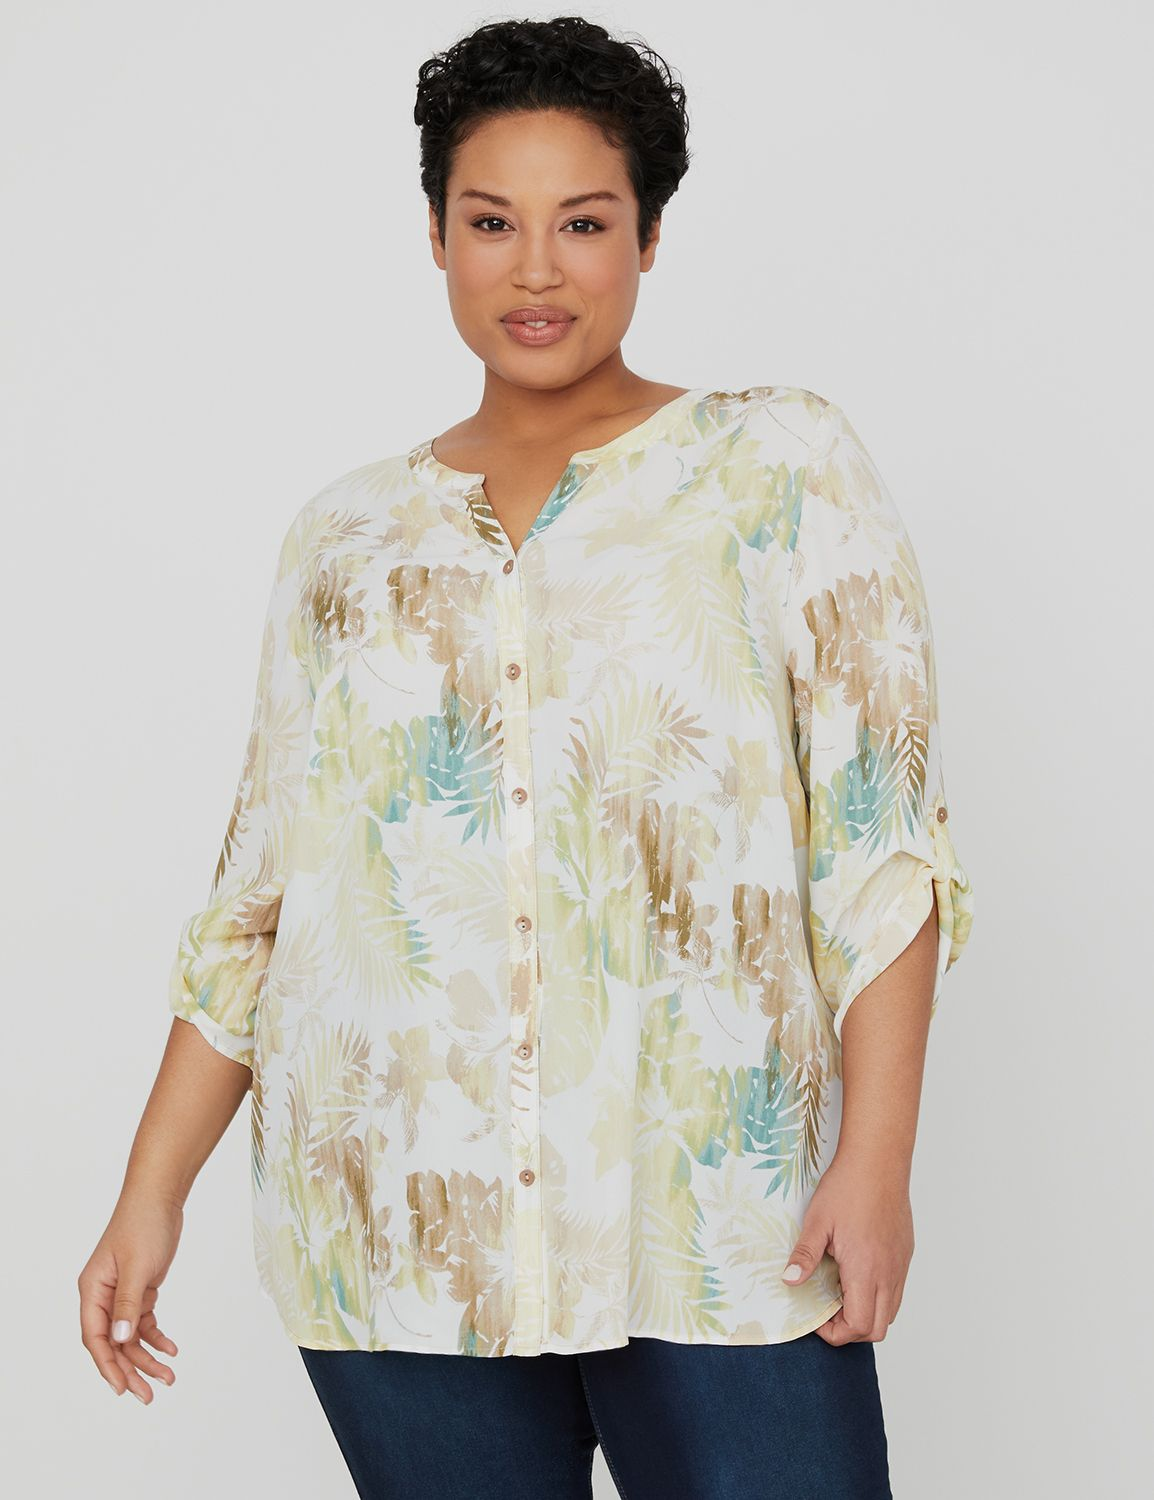 Canyon Shade Buttonfront Top 1090503 Opaque GGT Bttn Front Blous MP-300103549